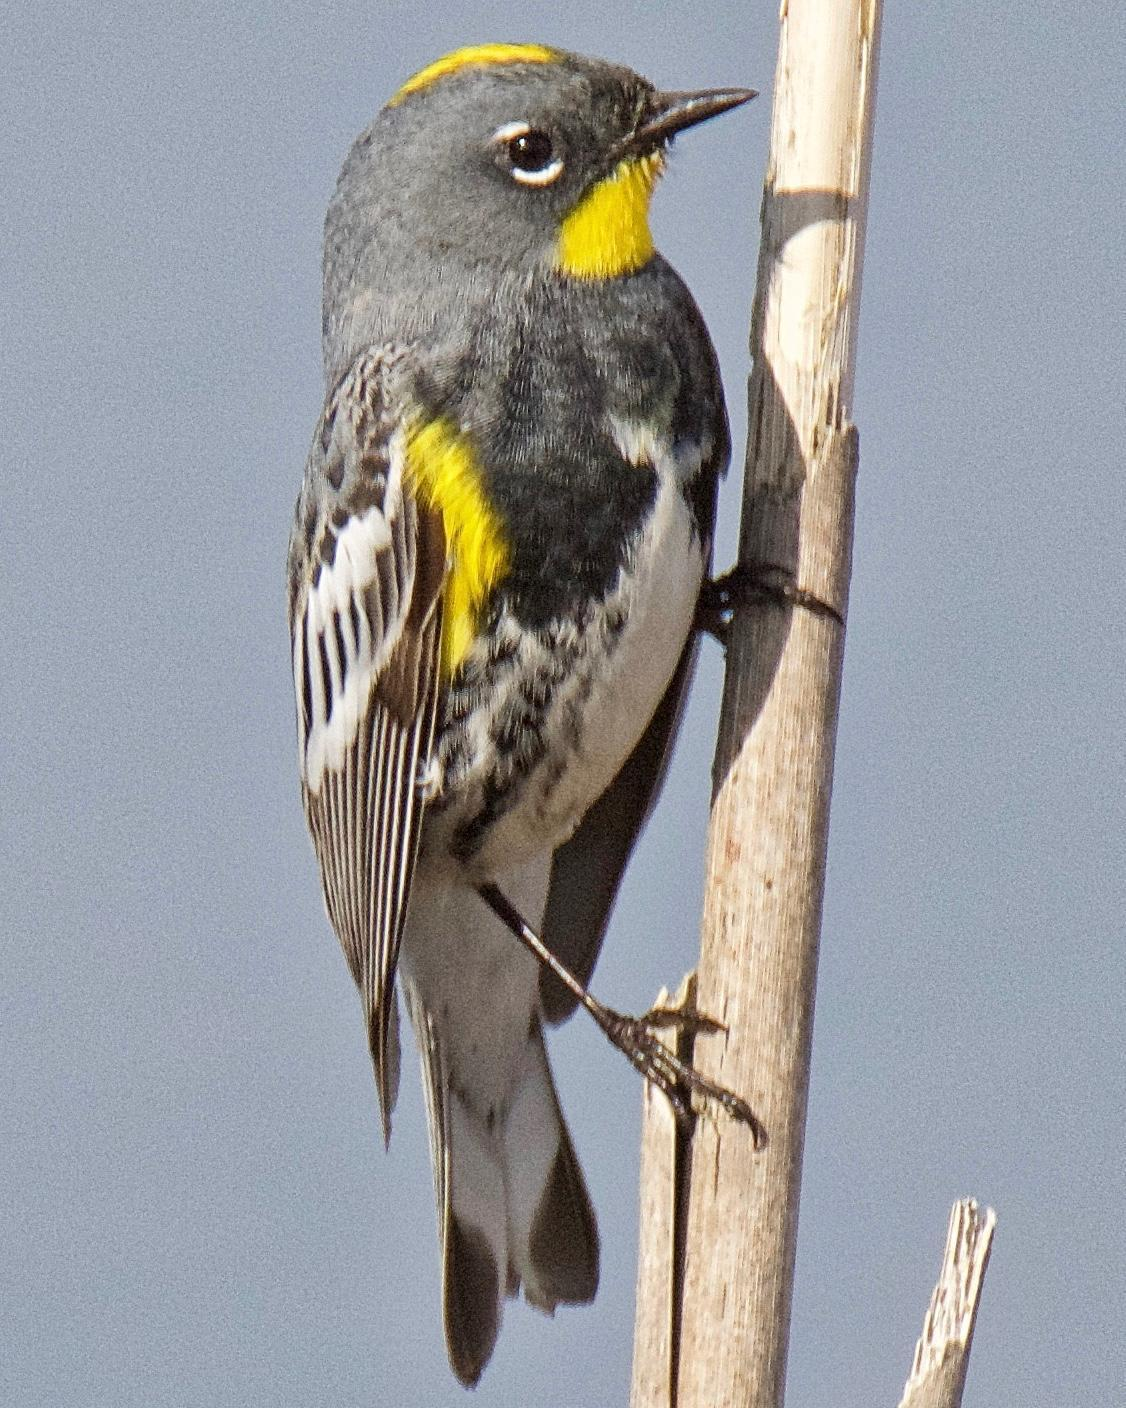 Yellow-rumped Warbler (Audubon's) Photo by Brian Avent